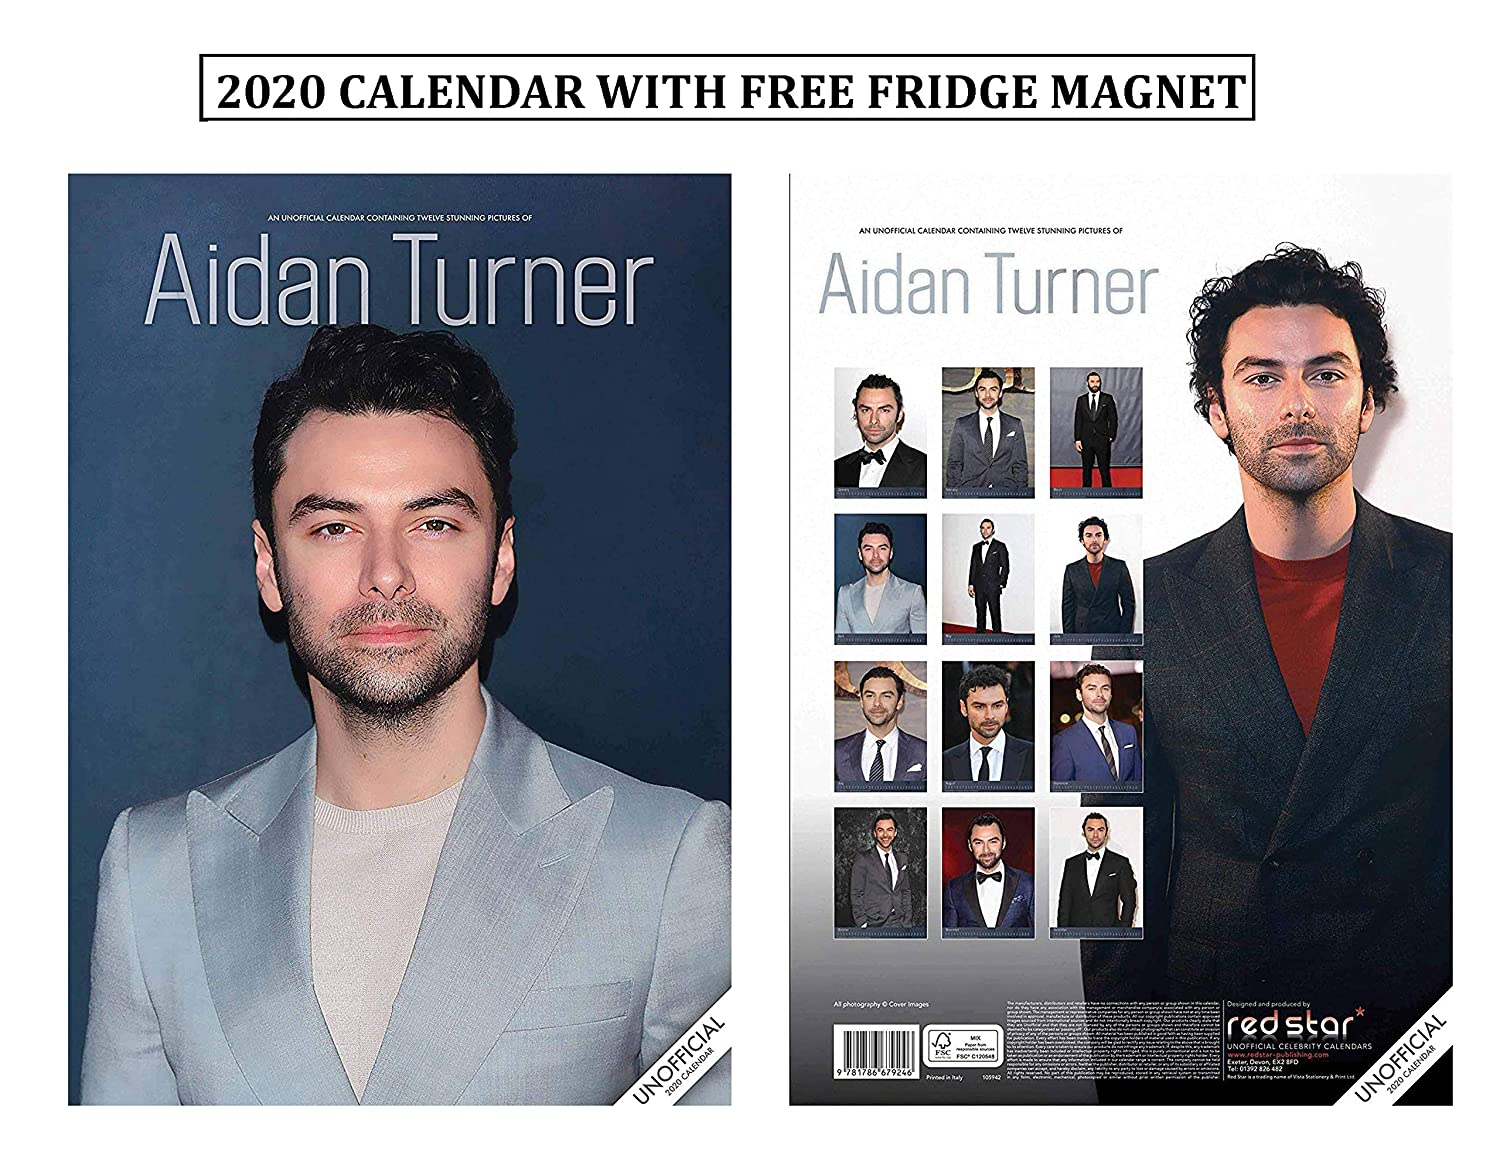 Aidan Turner Calendario 2020 With Aidan Turner Imán para Nevera ...